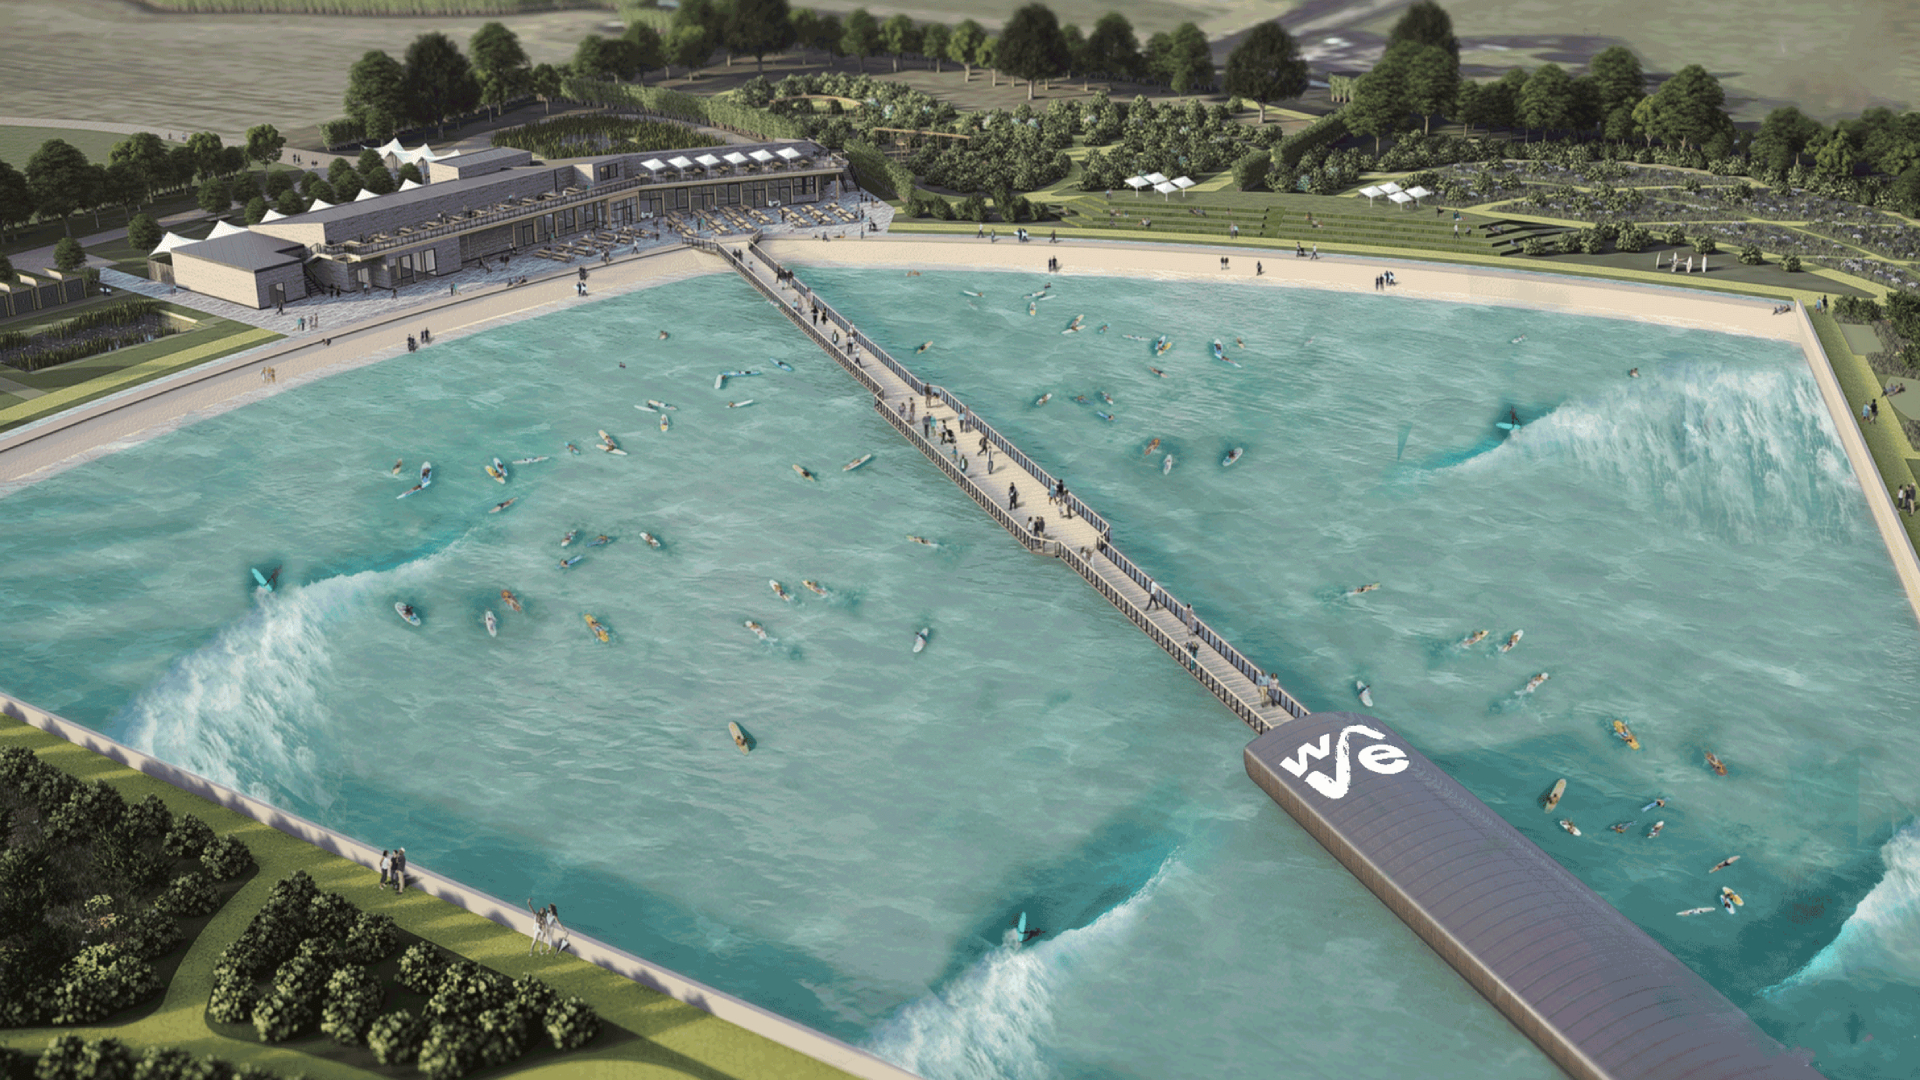 london wave pool plan